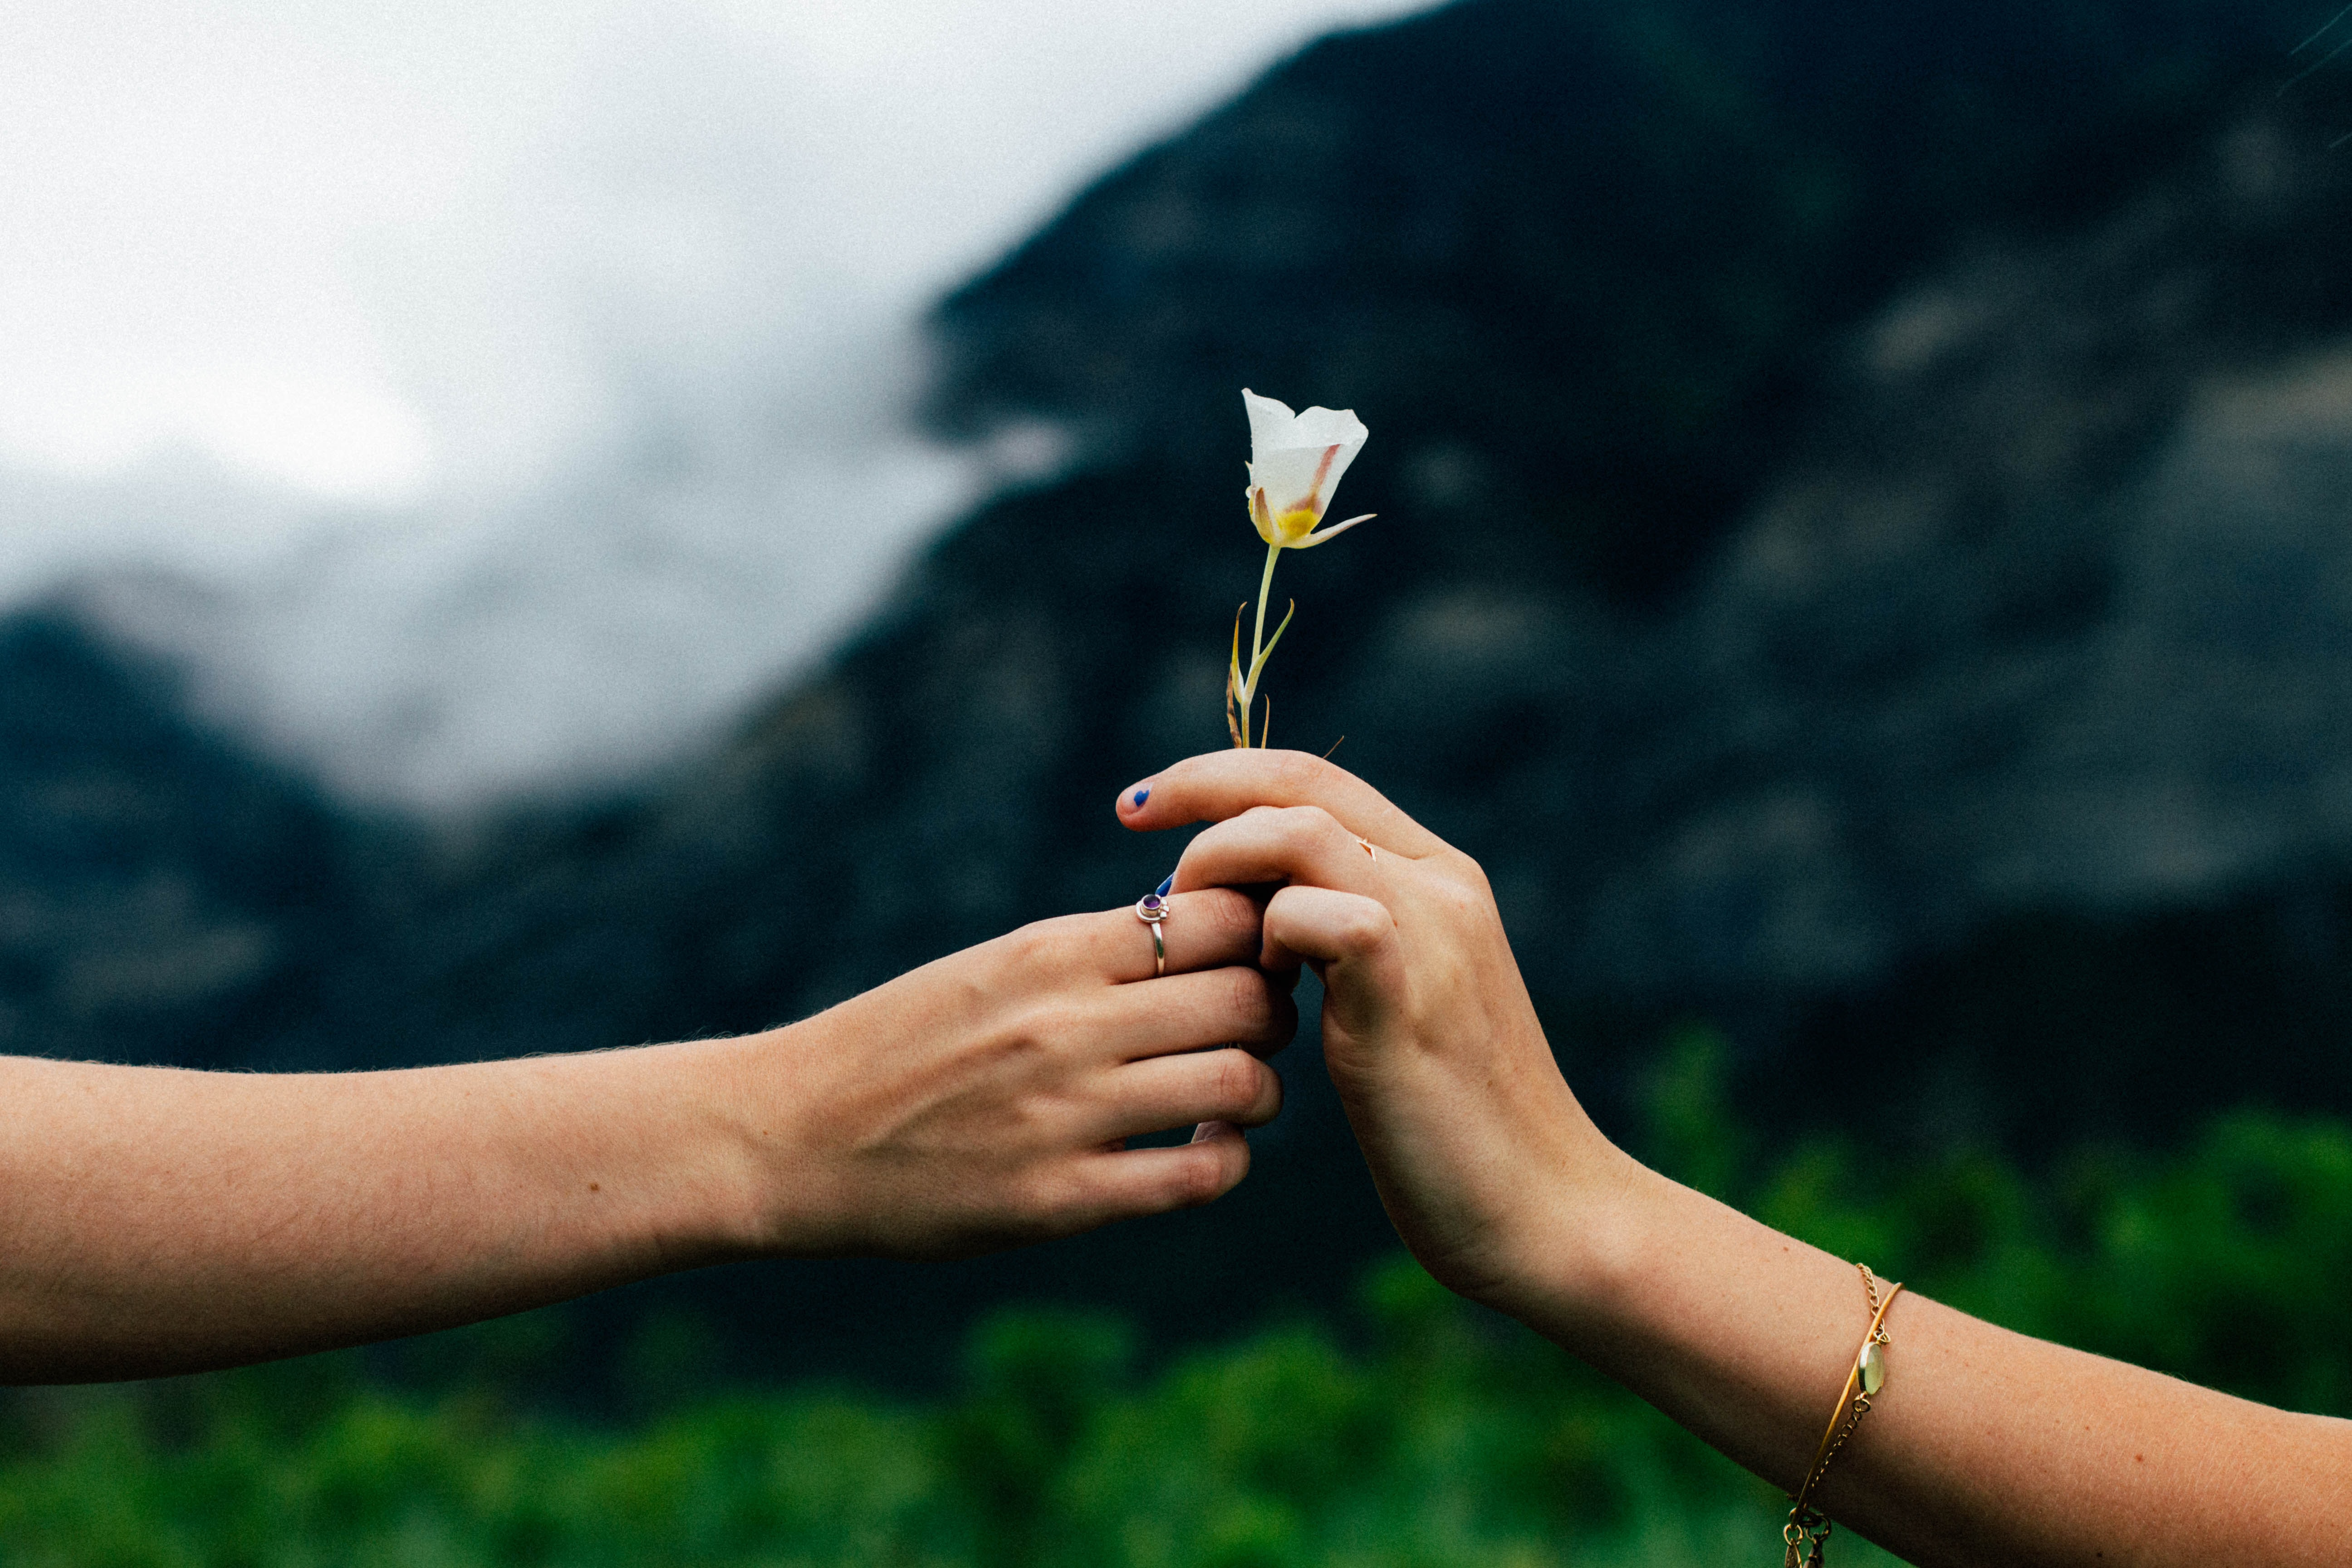 A flower being passed romantically from hand to hand